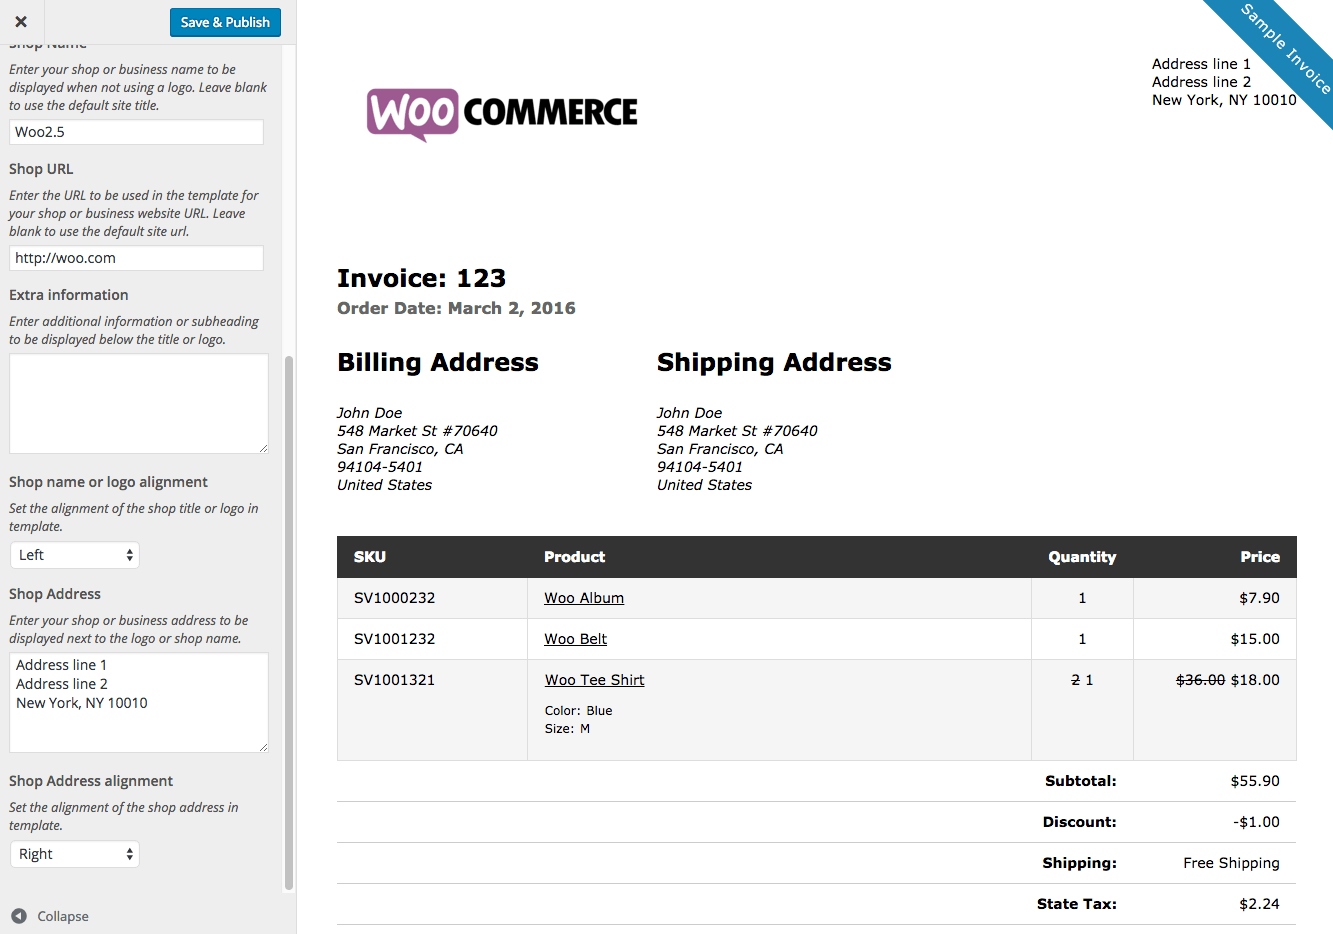 Laceychabertus  Pleasing Woocommerce Print Invoices Amp Packing Lists  Woocommerce Docs With Handsome Woocommerce Print Invoices  Packing Lists Customizer With Endearing Free Tax Invoice Template Australia Download Also Format Of An Invoice In Addition Invoicing Paypal And Pro Rata Invoice Definition As Well As Sales Invoices Should Be Additionally Free Invoice Templates Uk From Docswoocommercecom With Laceychabertus  Handsome Woocommerce Print Invoices Amp Packing Lists  Woocommerce Docs With Endearing Woocommerce Print Invoices  Packing Lists Customizer And Pleasing Free Tax Invoice Template Australia Download Also Format Of An Invoice In Addition Invoicing Paypal From Docswoocommercecom